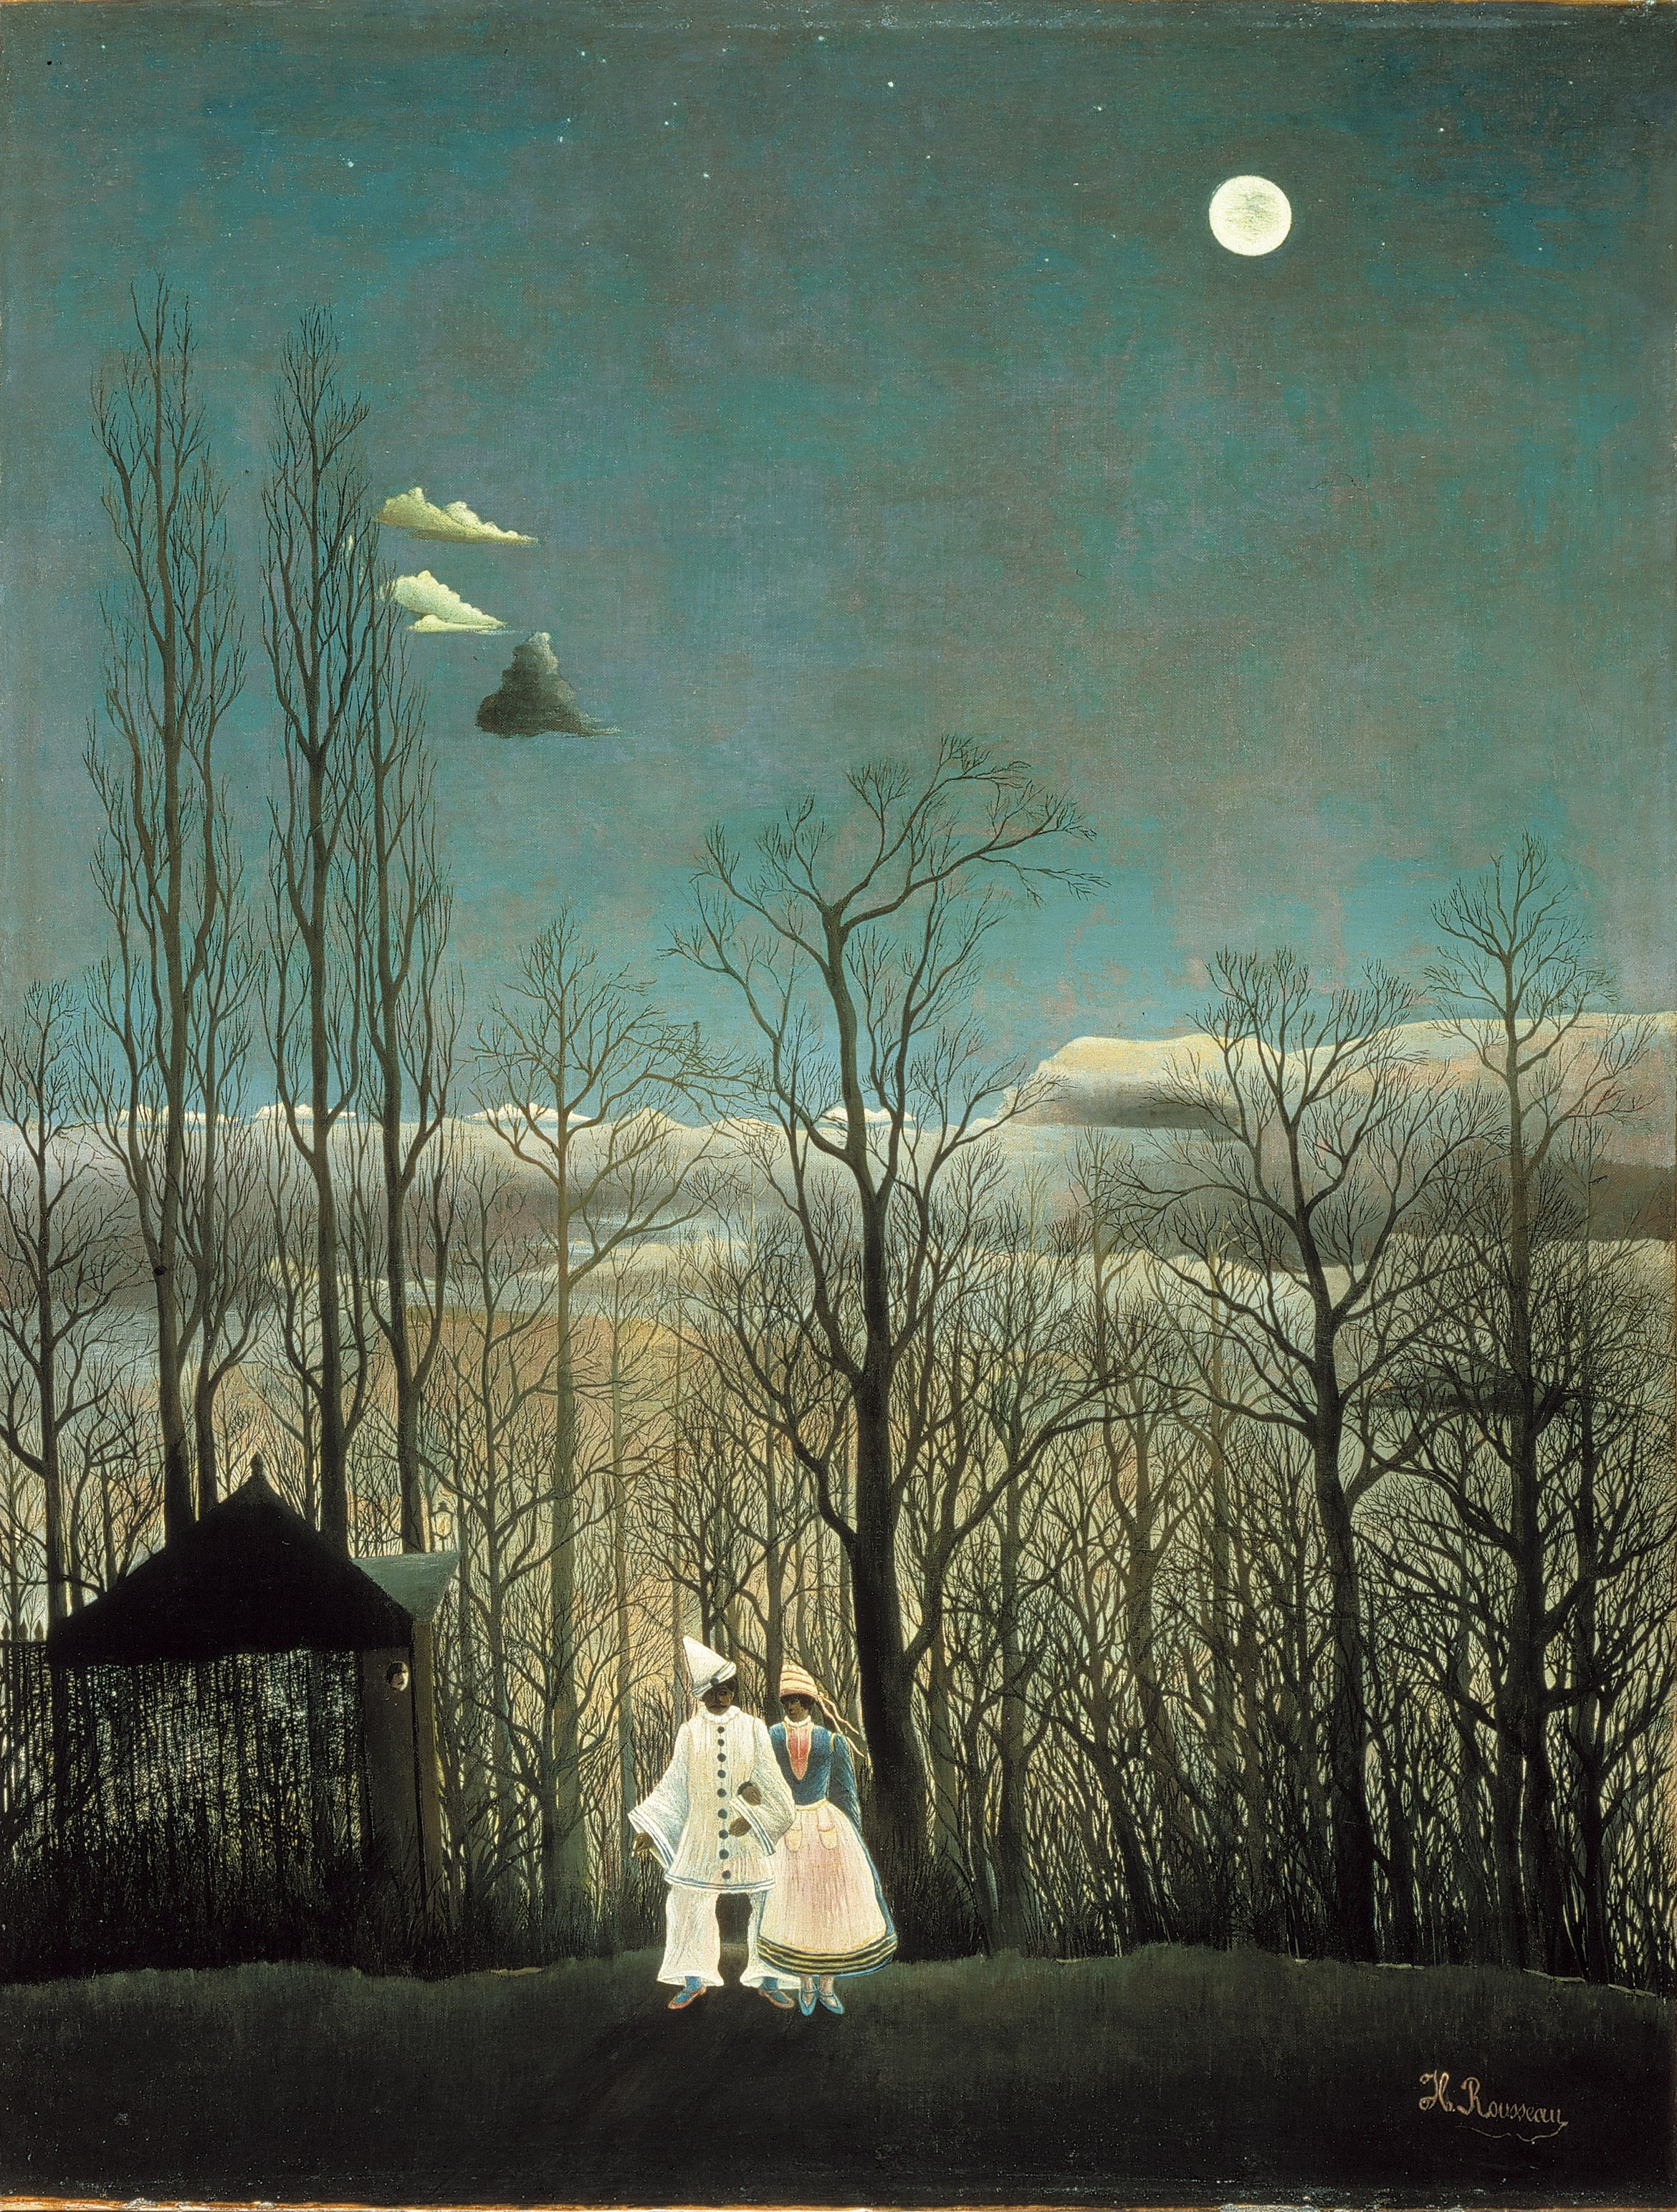 http://upload.wikimedia.org/wikipedia/commons/2/2b/Henri_Rousseau_-_A_Carnival_Evening.jpg